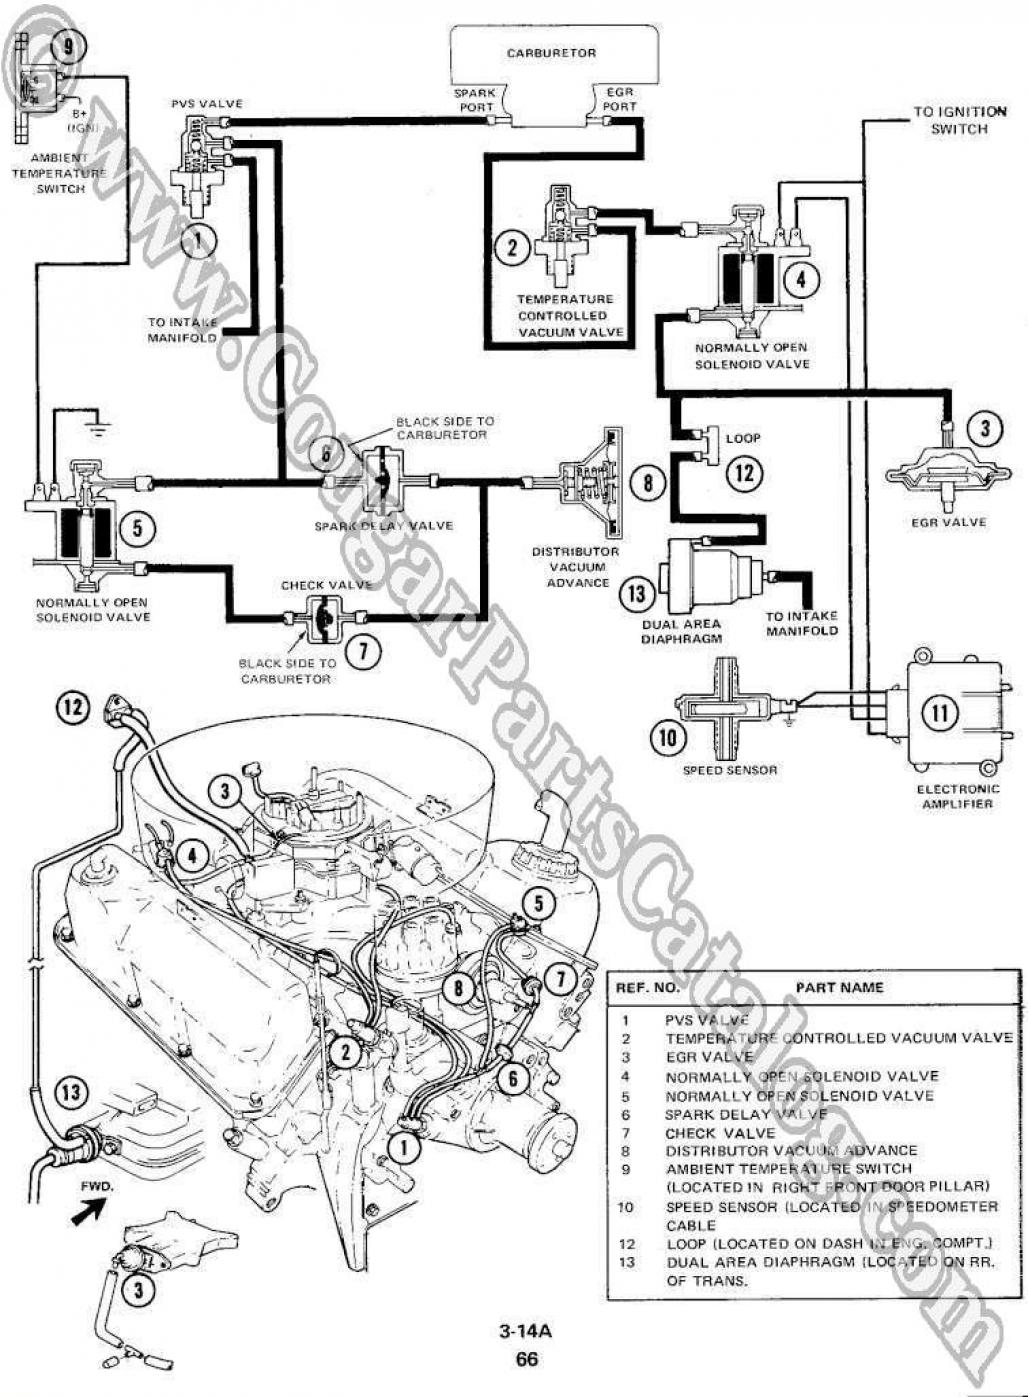 1973 Ford Mustang Wiring Diagram Trusted 258 Harness Diagrams Shop Manual Engine Emission System Diagnosis Repro Ignition